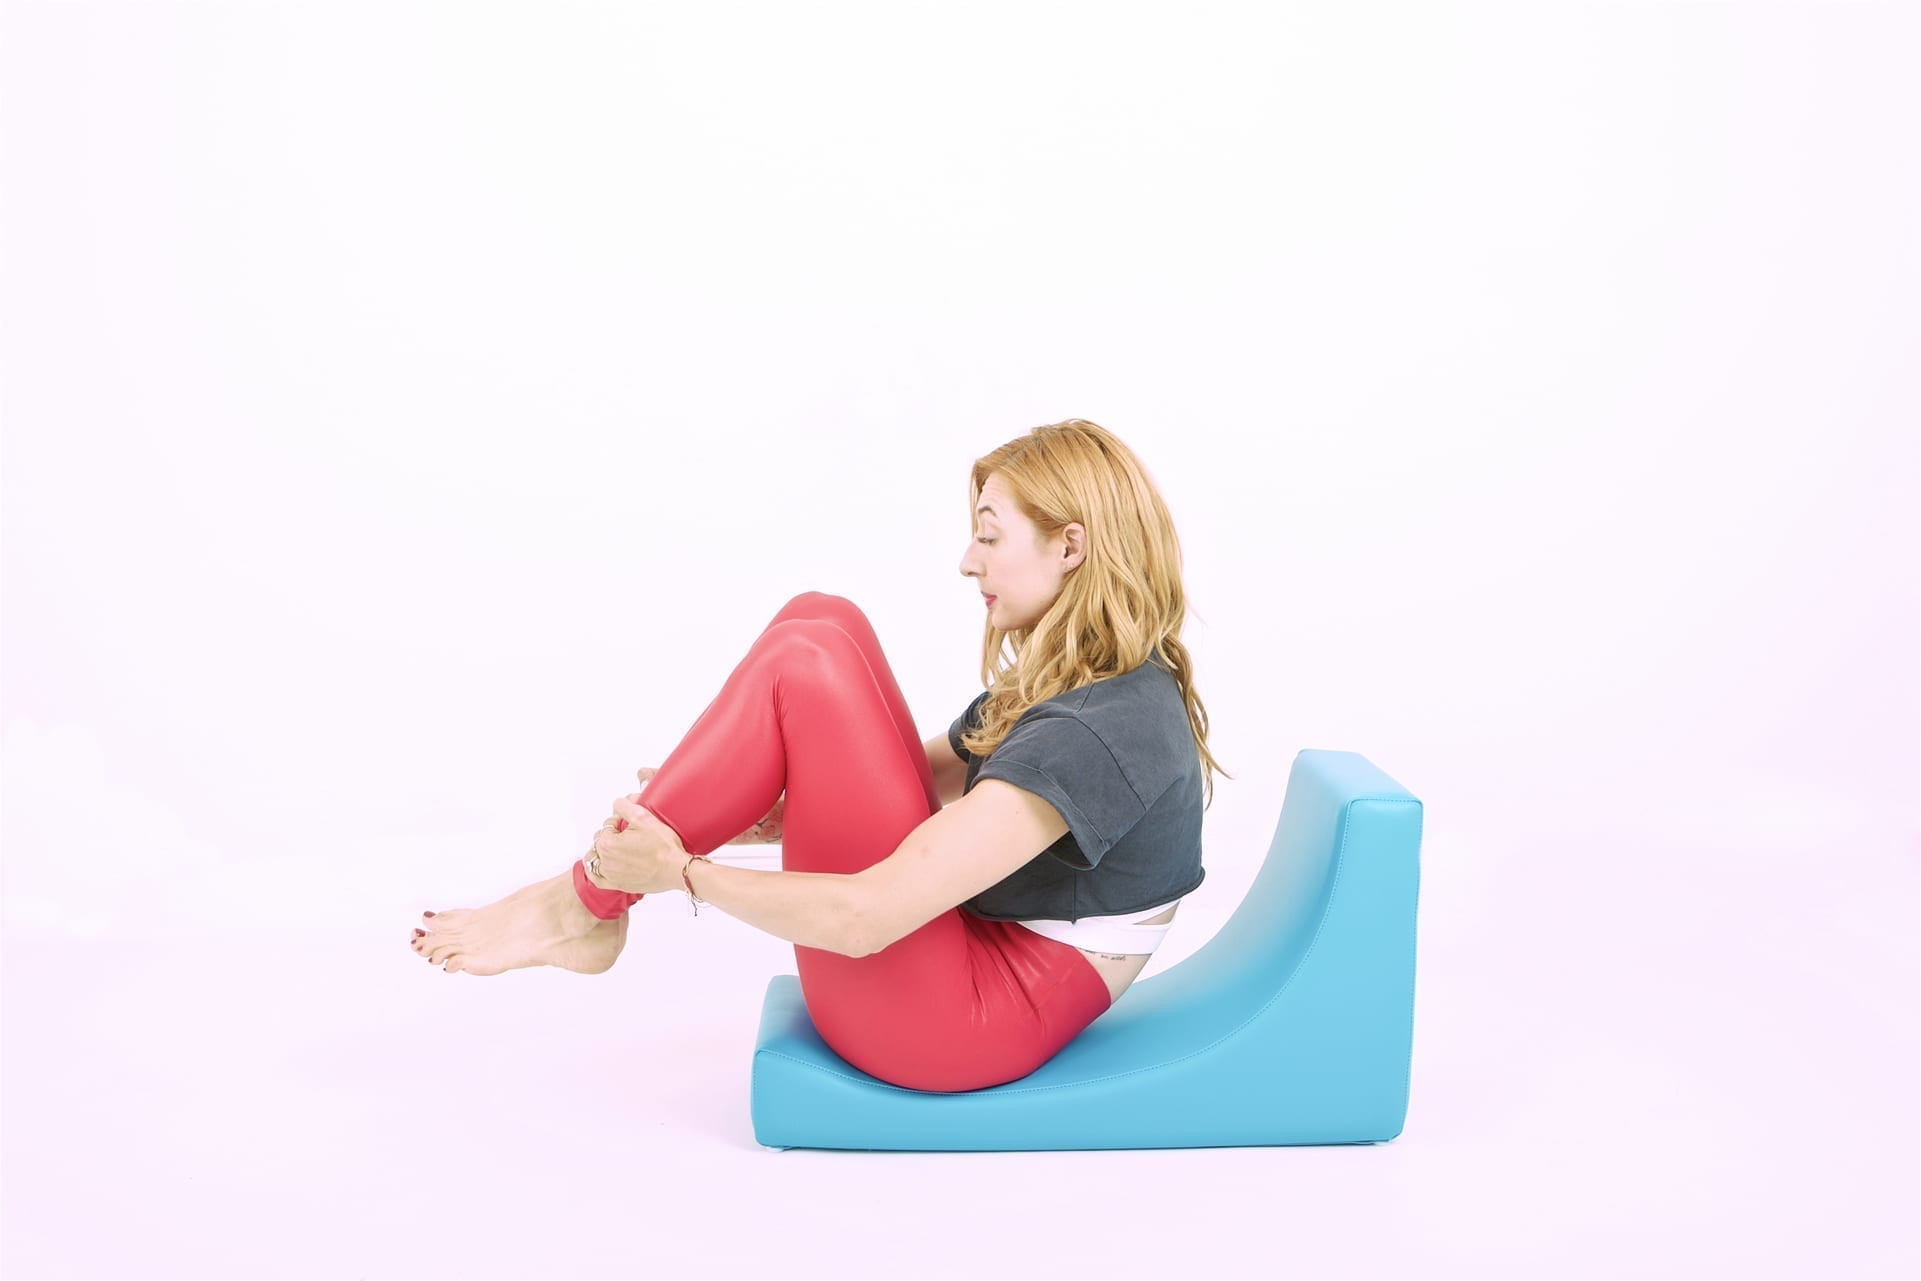 Rolling Like a Ball on the C-shaper | Online Pilates Classes